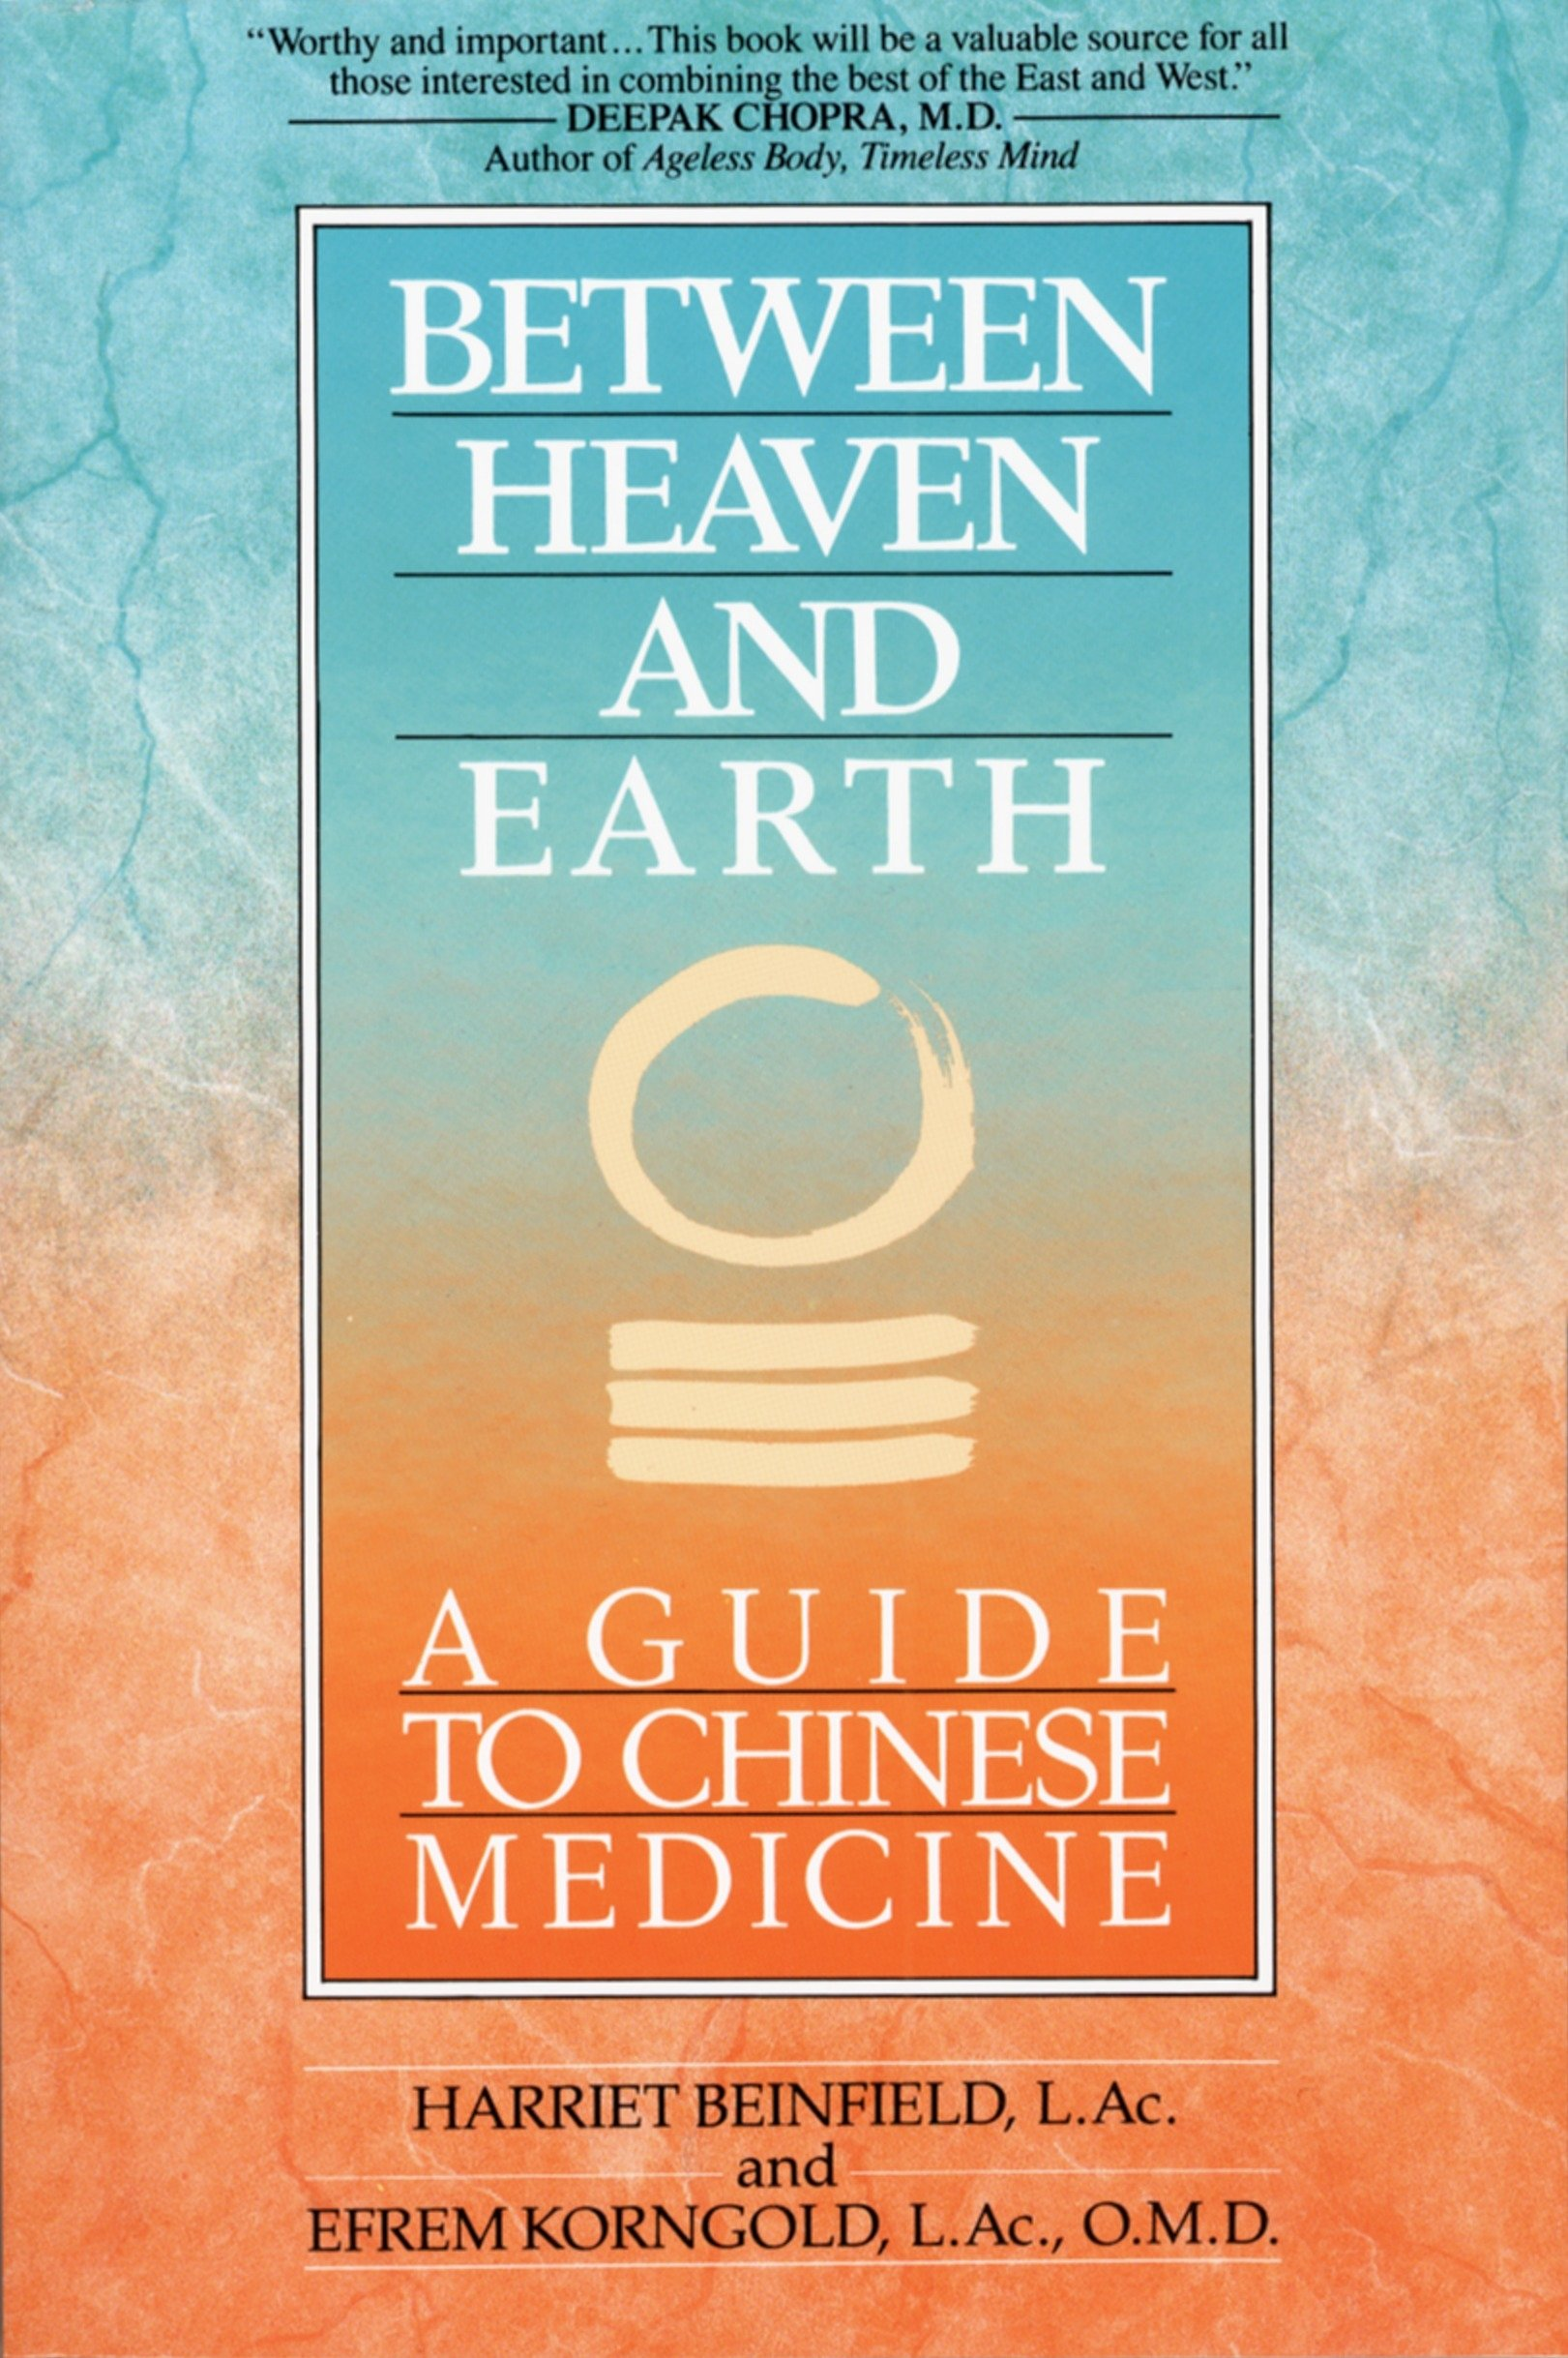 Between Heaven and Earth – Harriet Beinfield